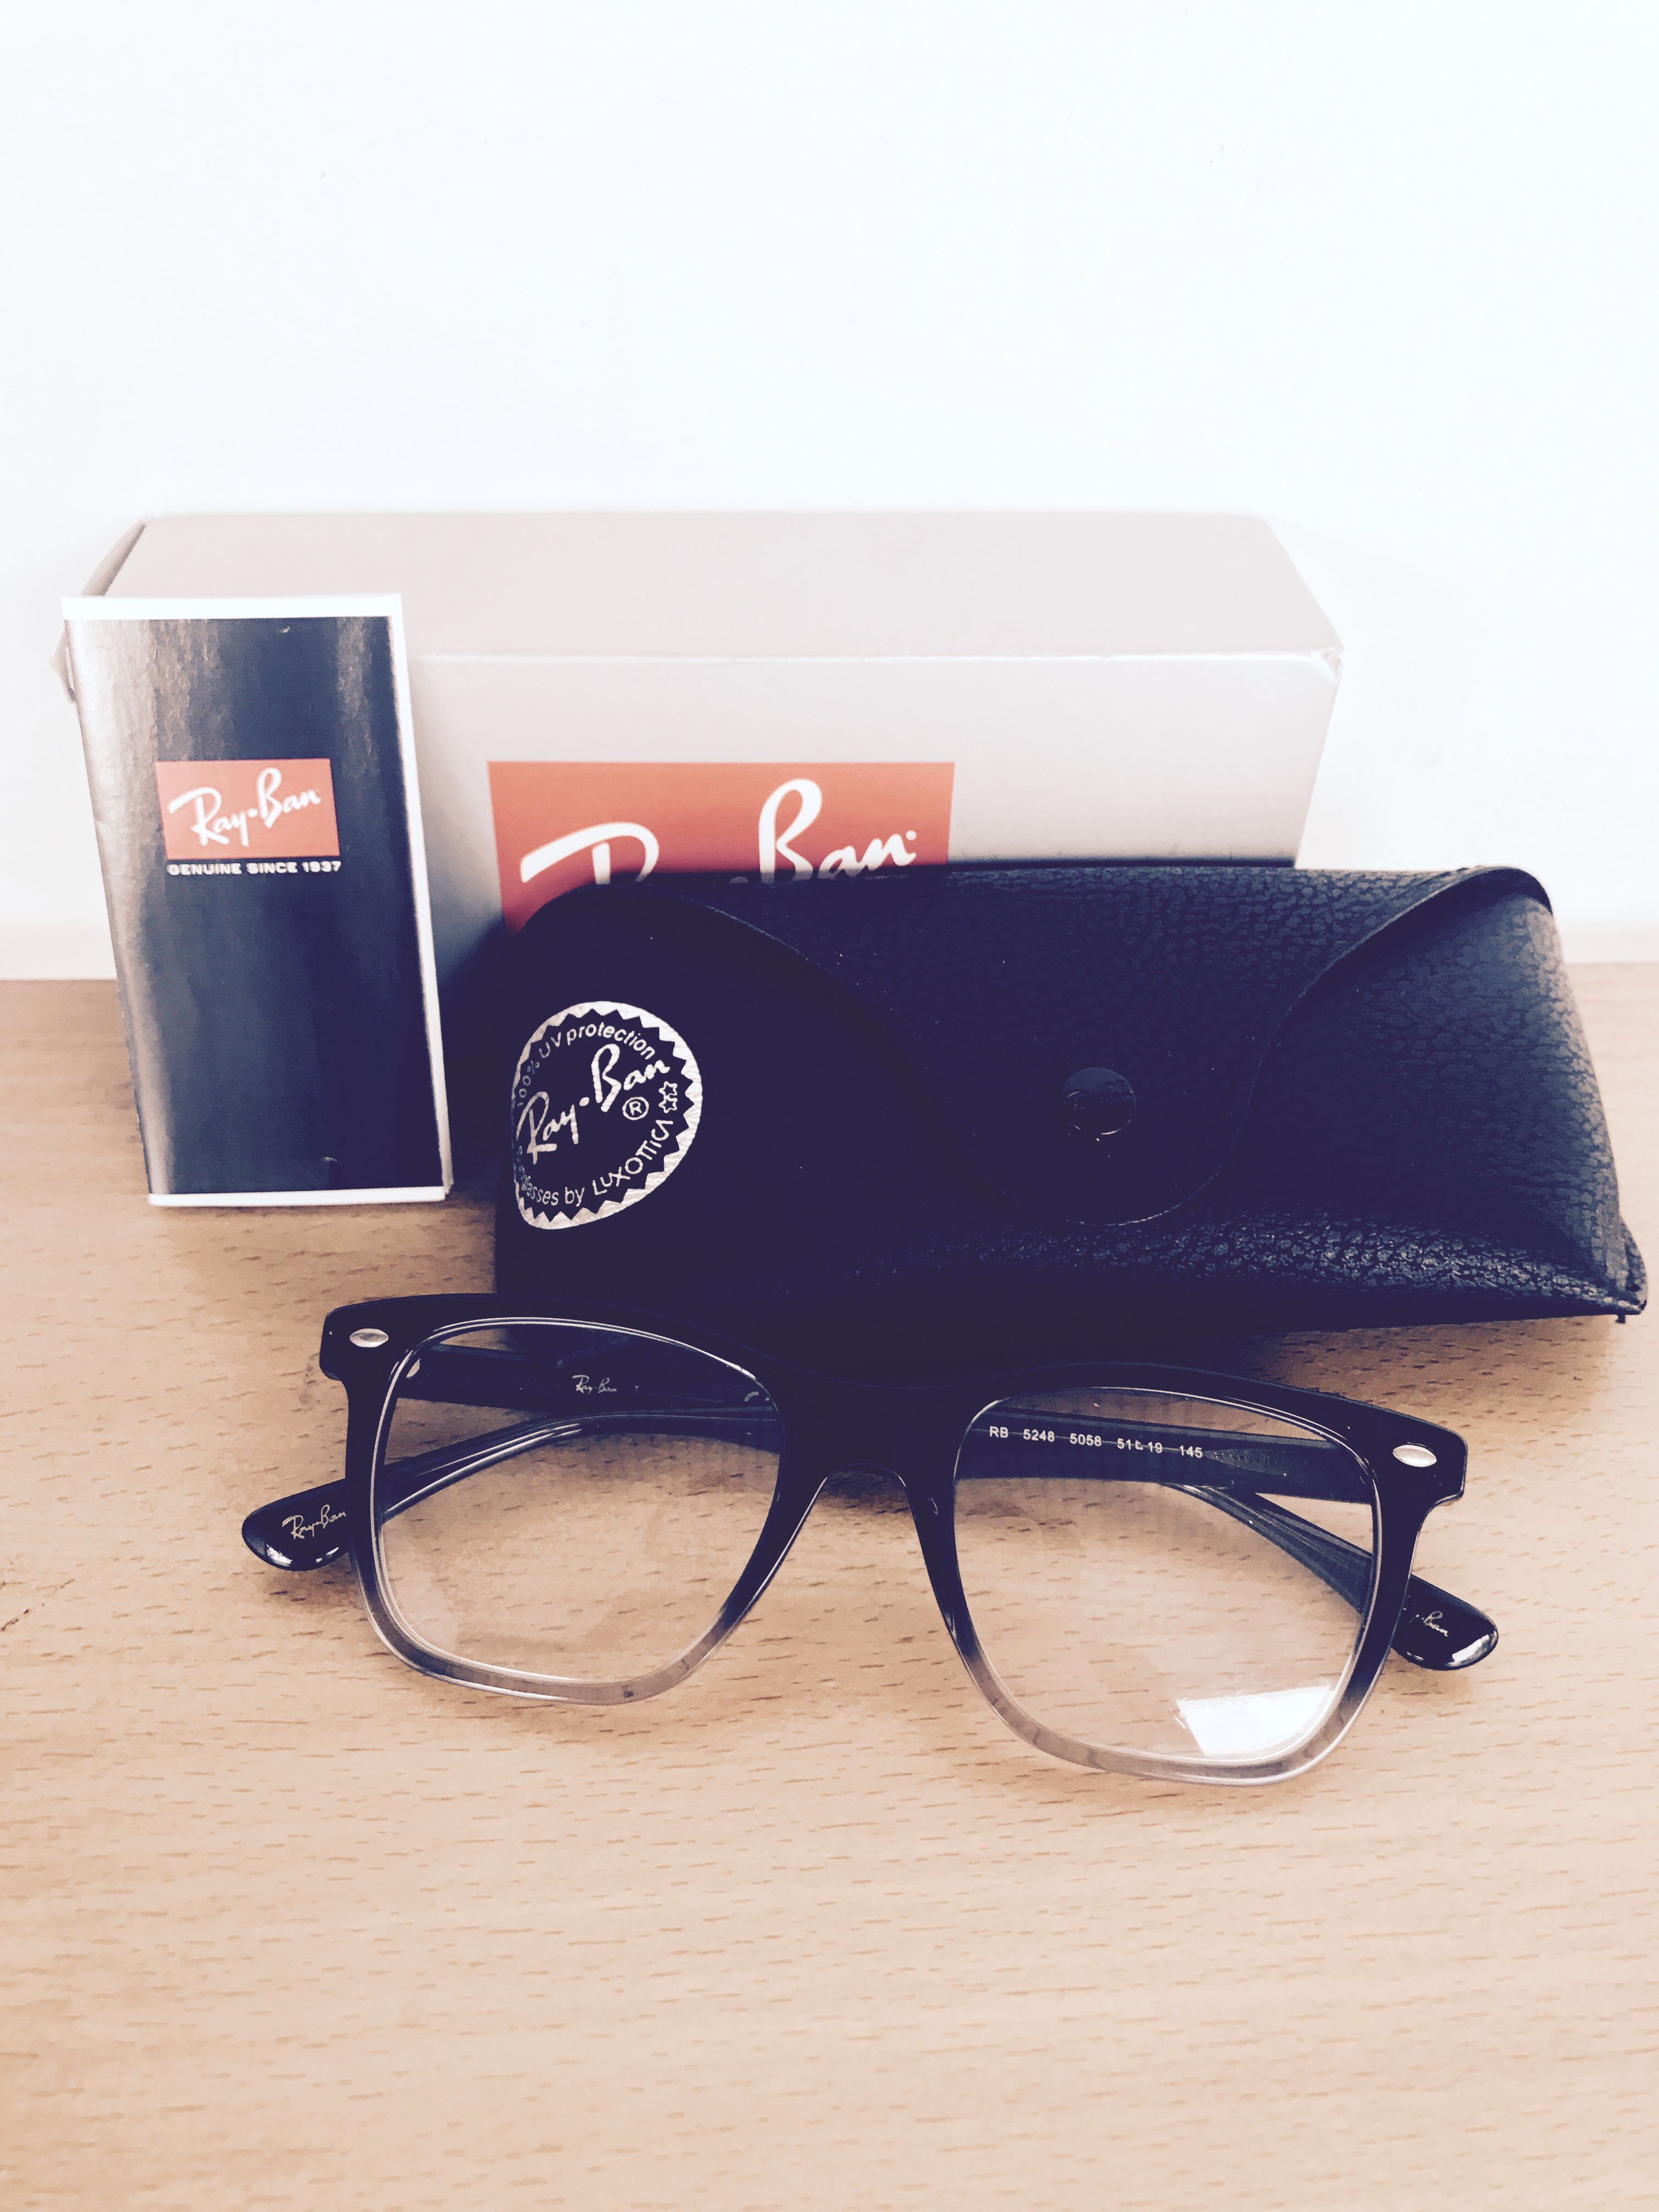 e226a31c83 Rayban Spectacles Frame